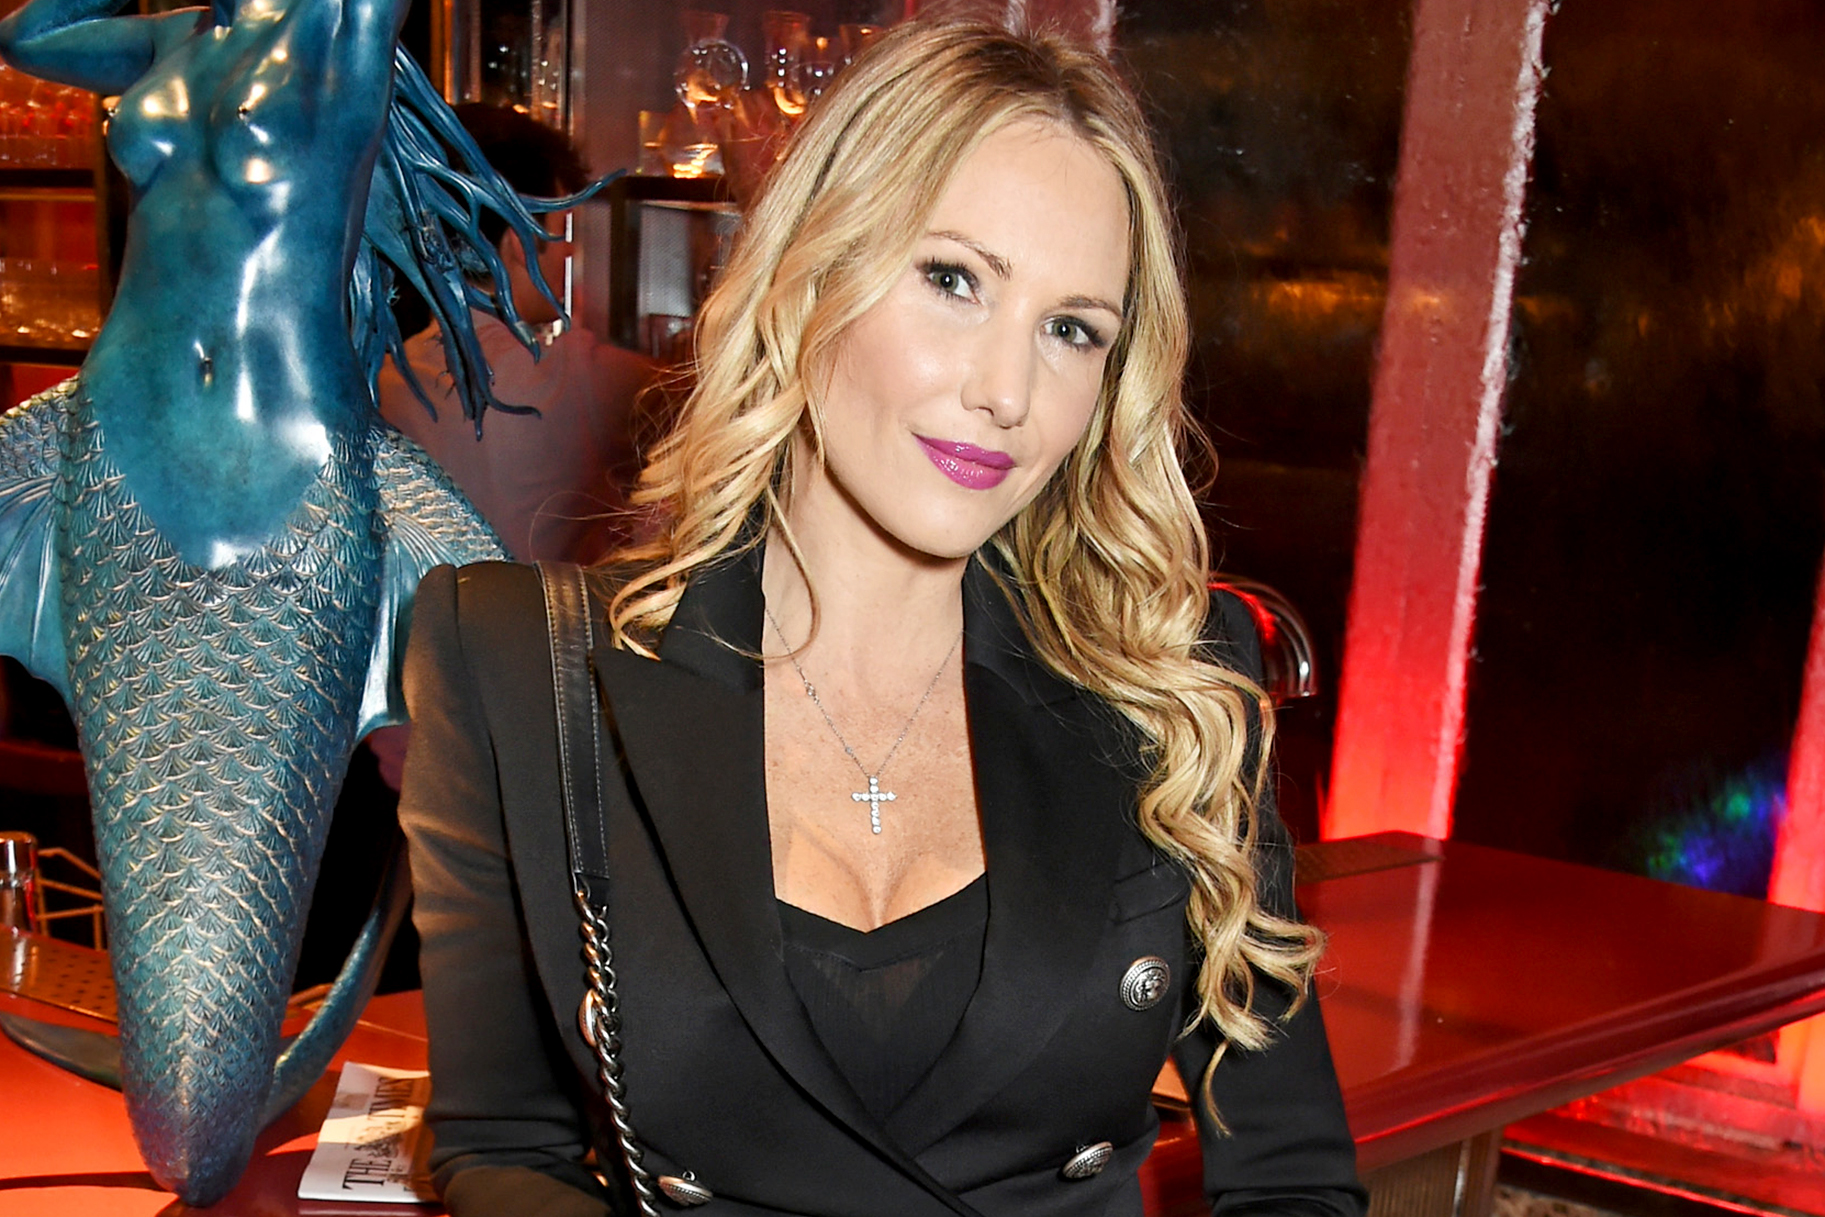 The 47-year old daughter of father (?) and mother(?) Adela King in 2021 photo. Adela King earned a  million dollar salary - leaving the net worth at  million in 2021